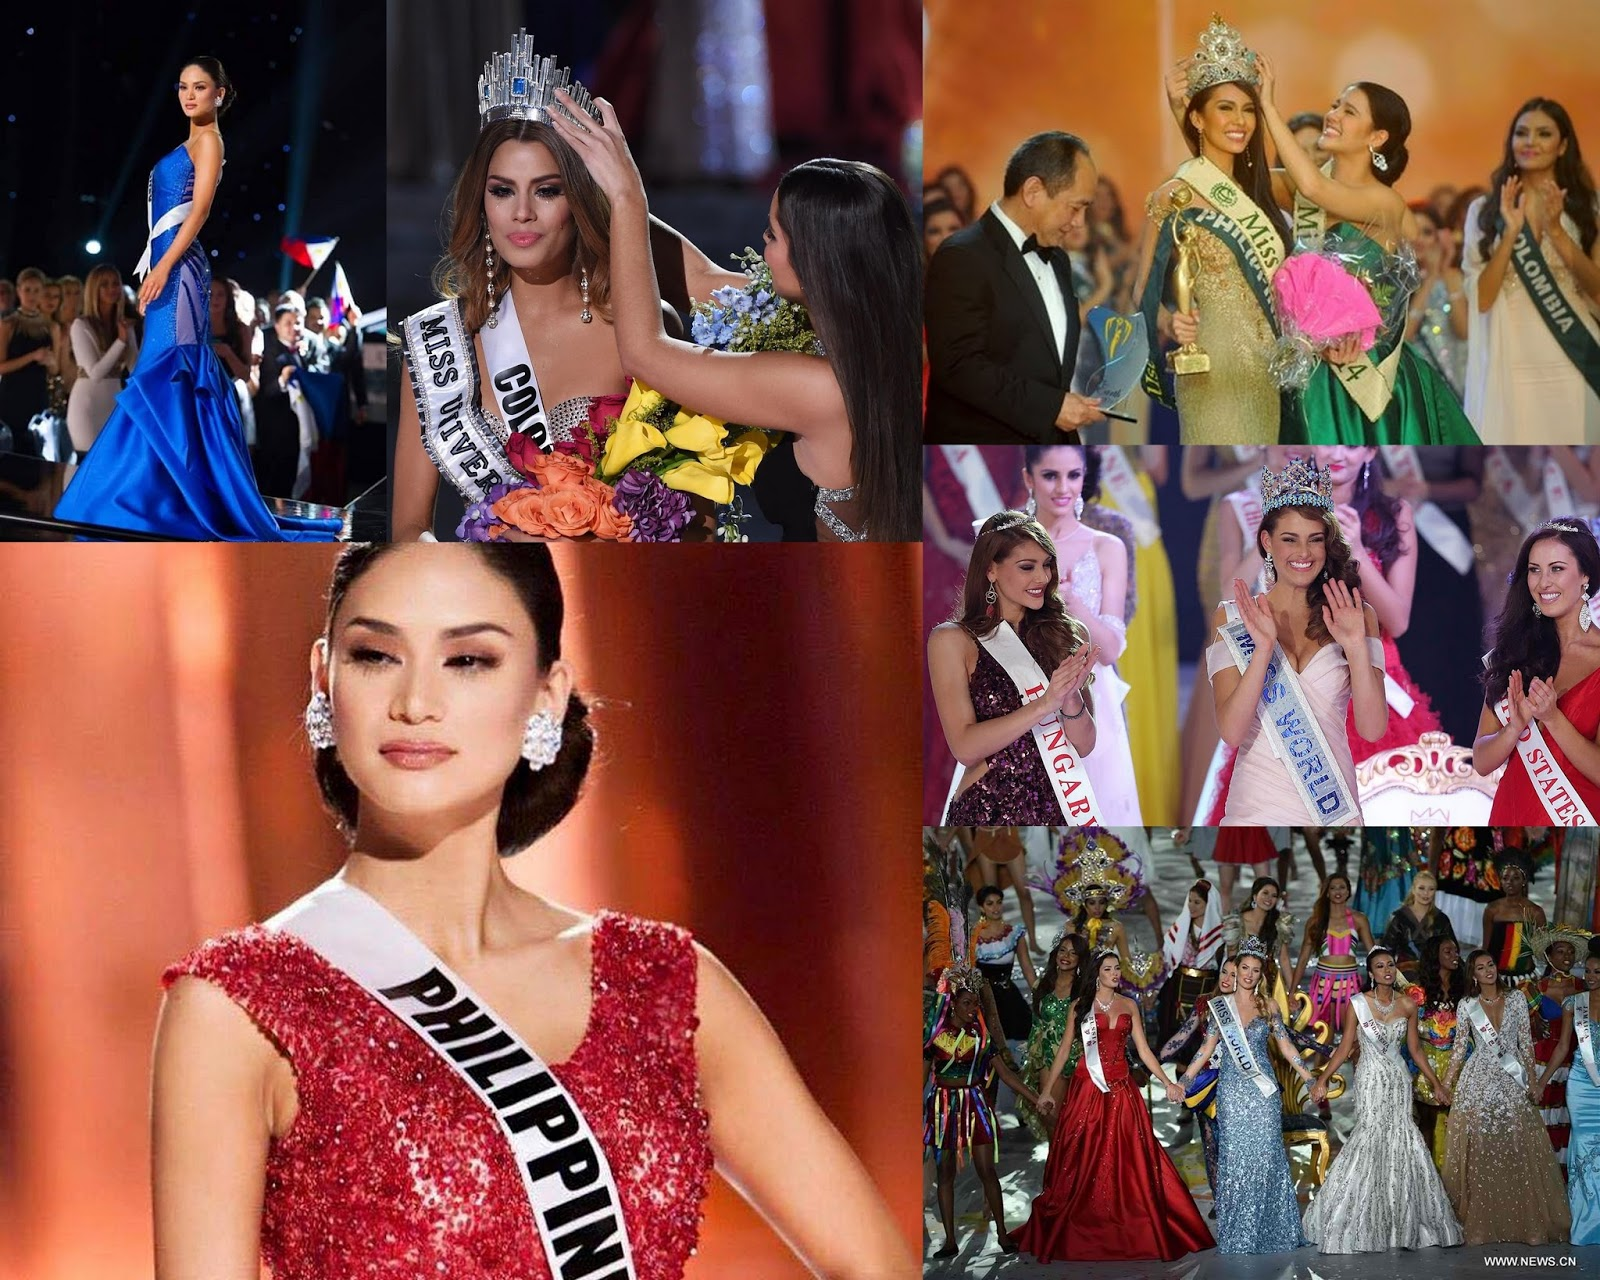 12 interesting facts to consider before joining beauty pageants joining pageants is fun when you consider these 12 steps